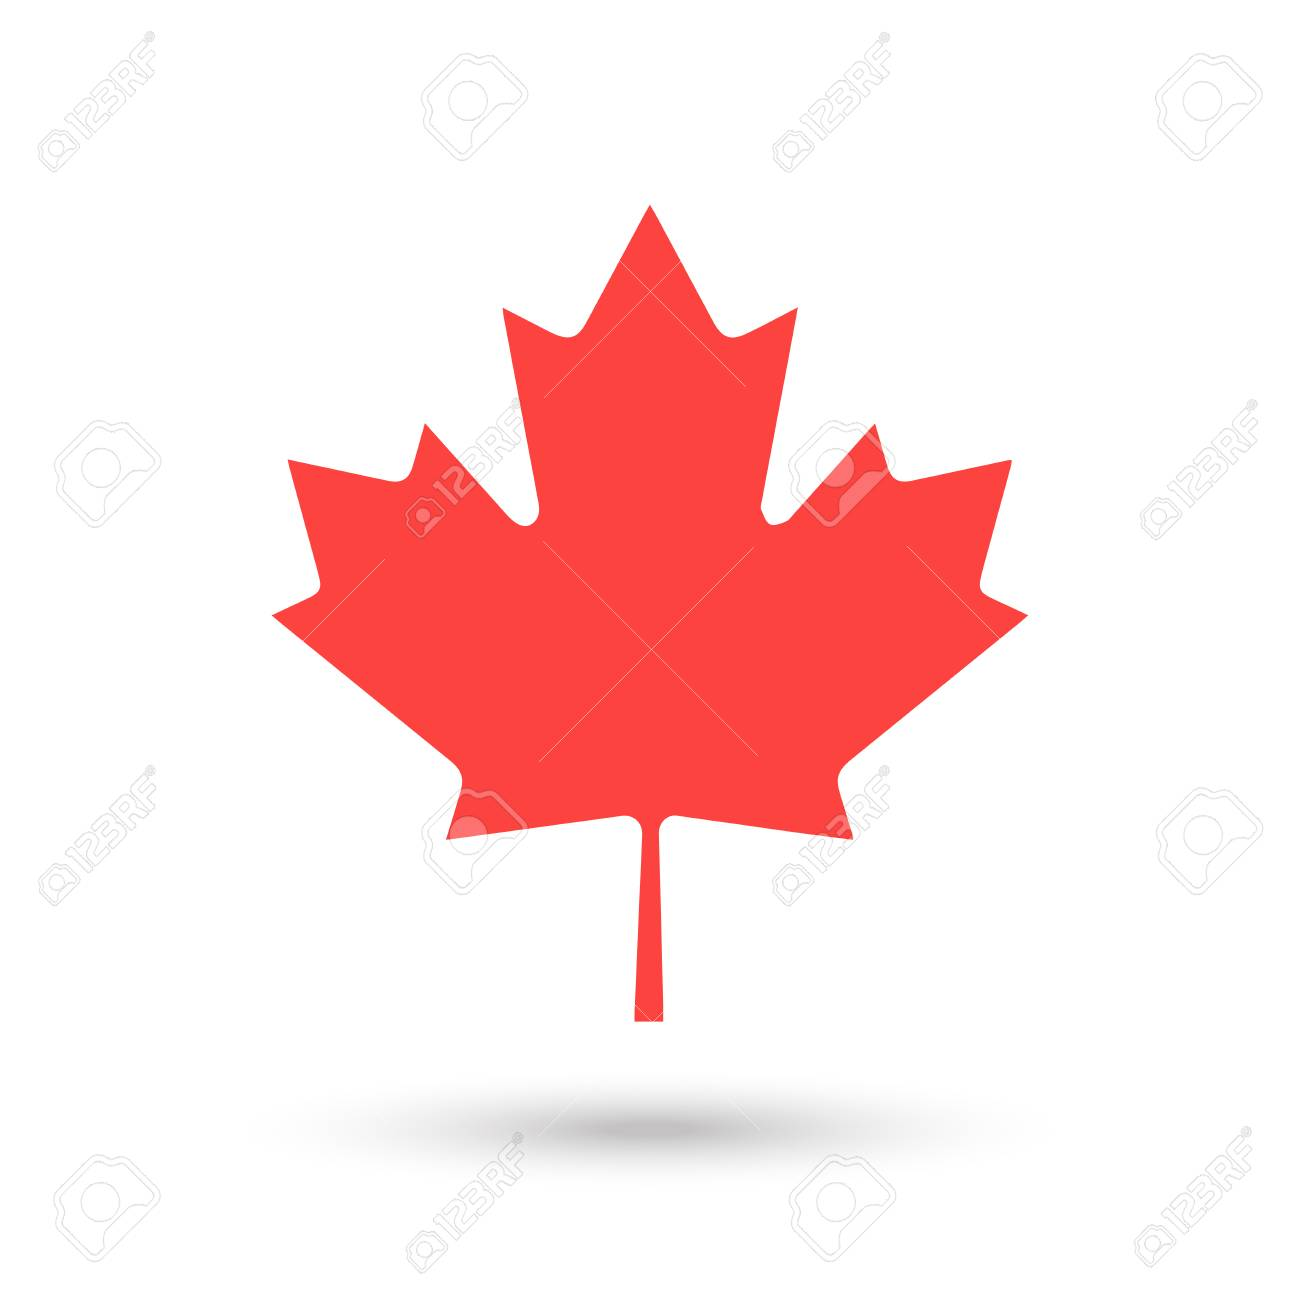 Maple Leaf Logo Isolated On White Happy Canada Day Greeting